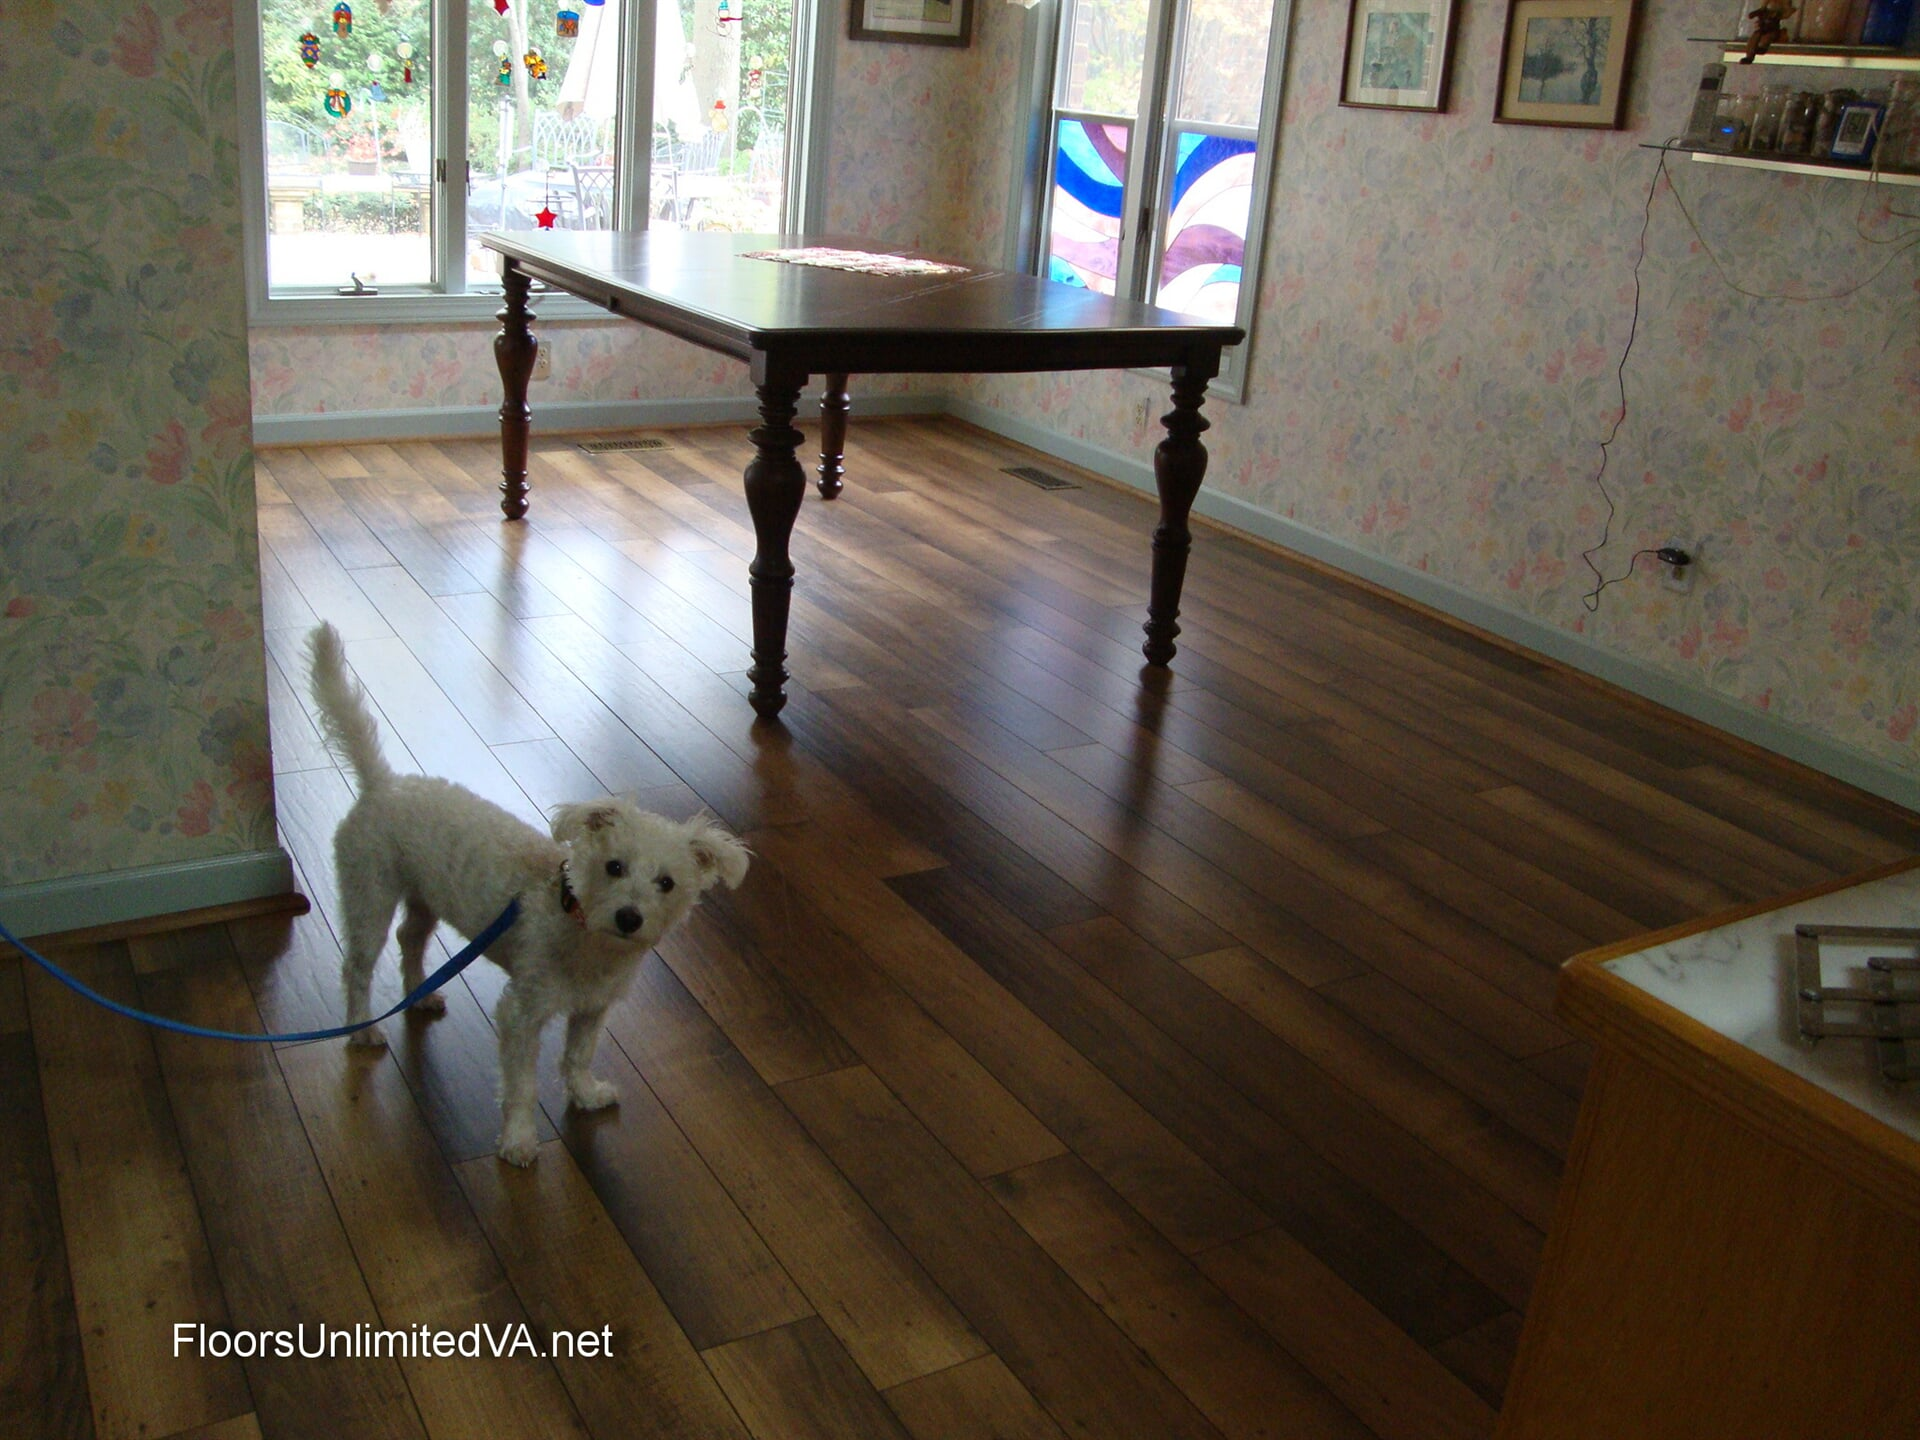 Pet-friendly flooring installation in Norfolk, VA from Floors Unlimited